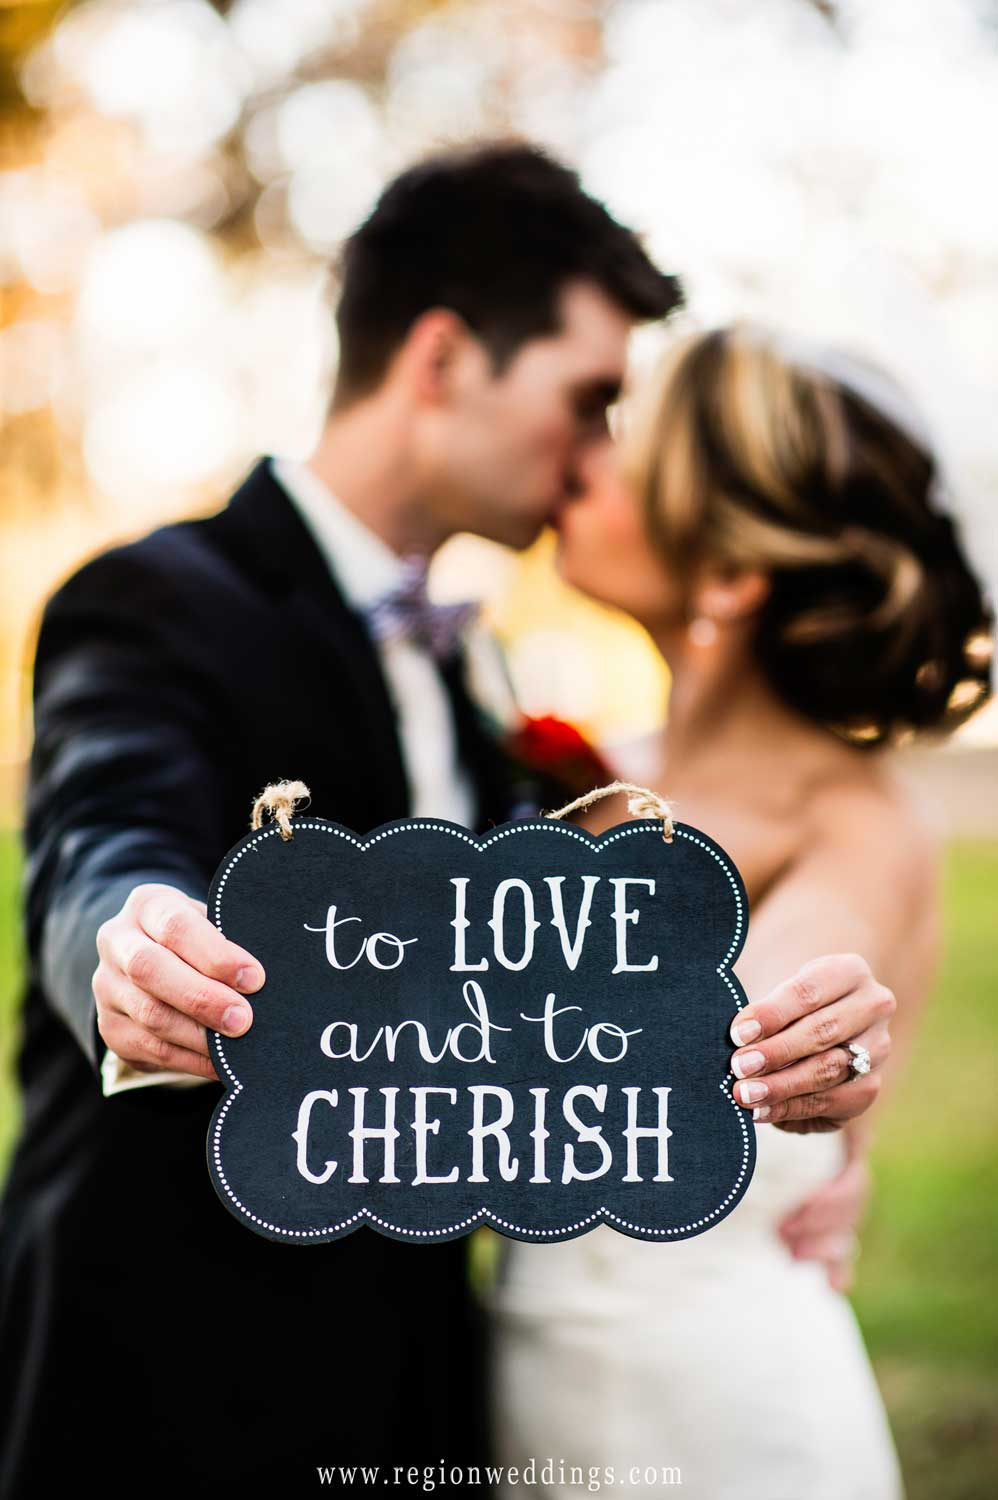 The bride and groom hold a sign that states To Love and To Cherish.